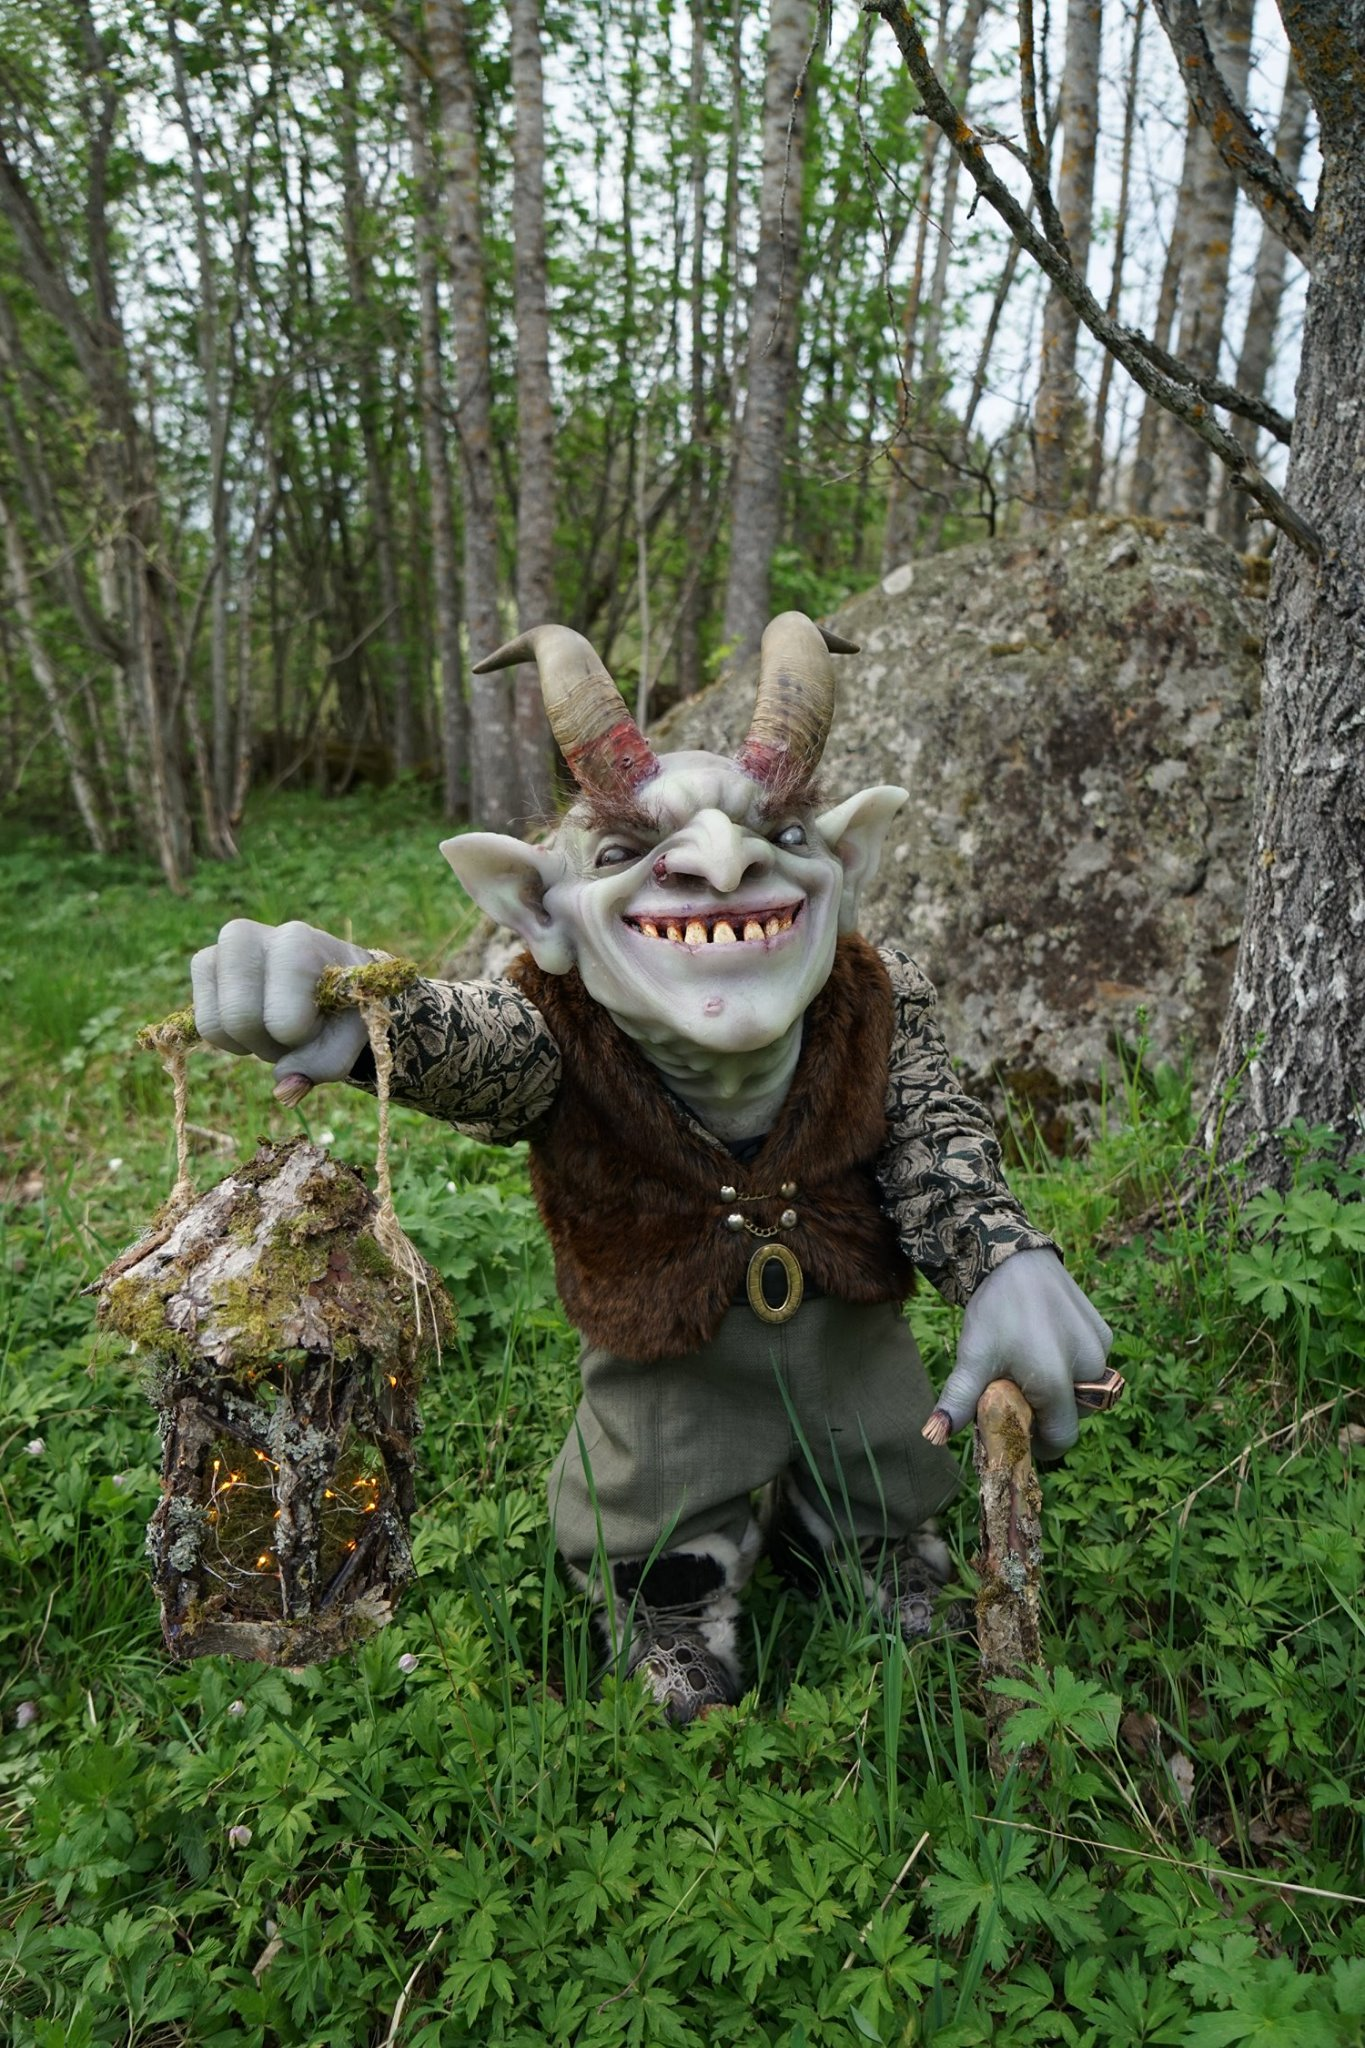 Gunnar the Goblin, created by many artists in a joint collaboration at Helsinglight FX